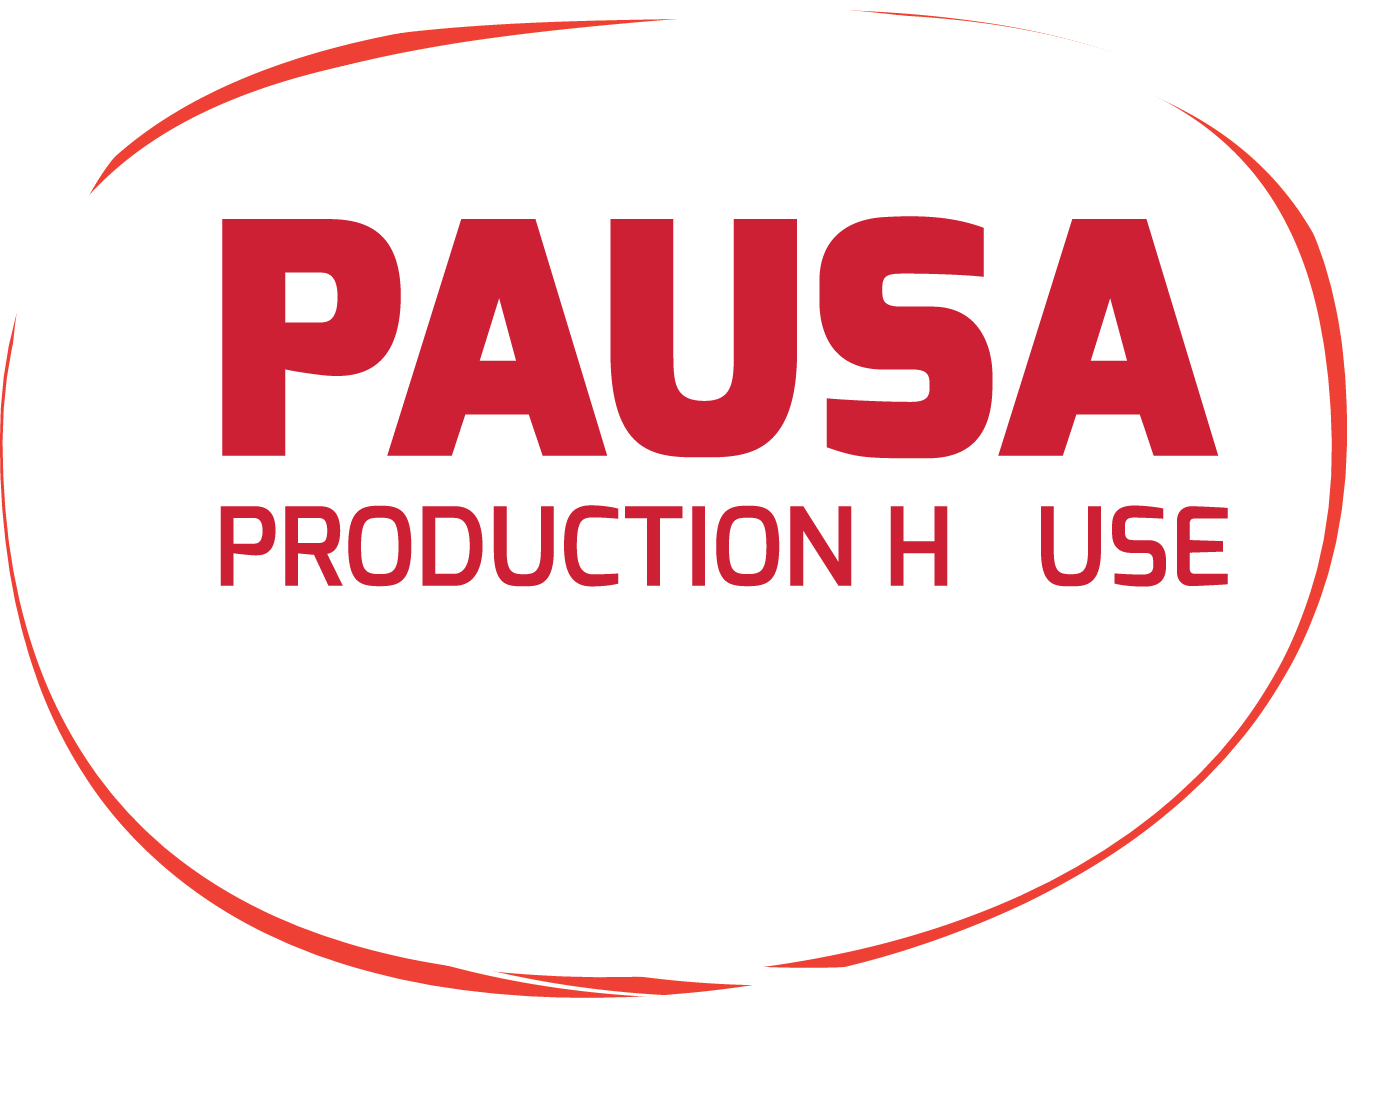 Pausa Production House  | Create. content.